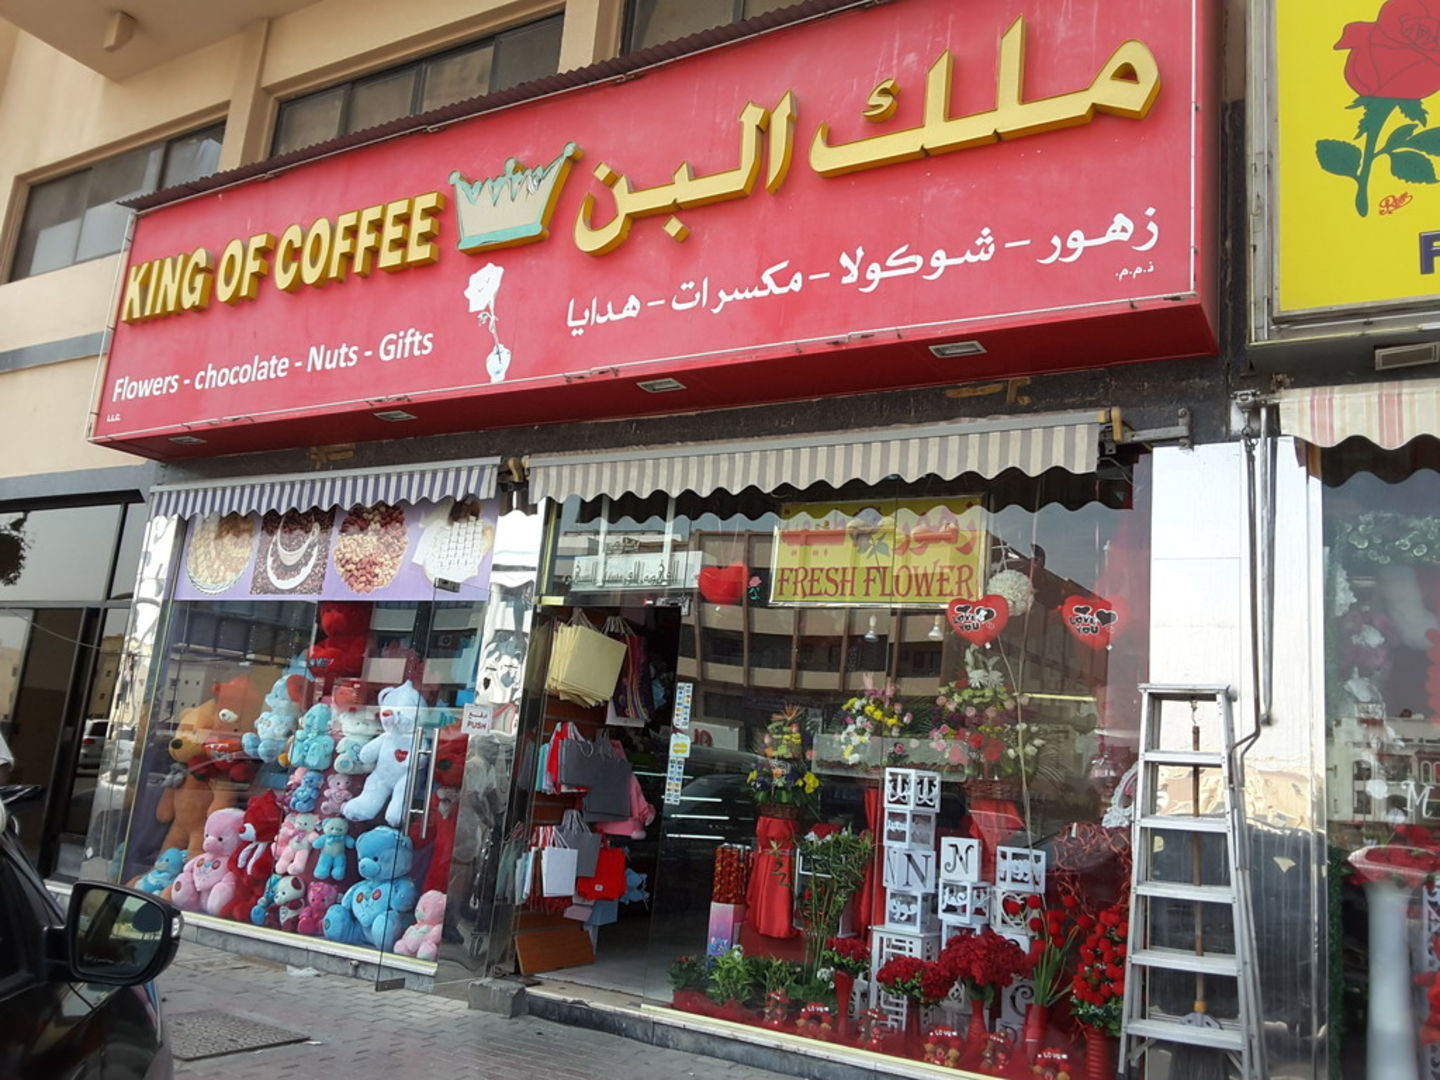 HiDubai-business-king-of-coffee-shopping-supermarkets-hypermarkets-grocery-stores-al-muteena-dubai-2